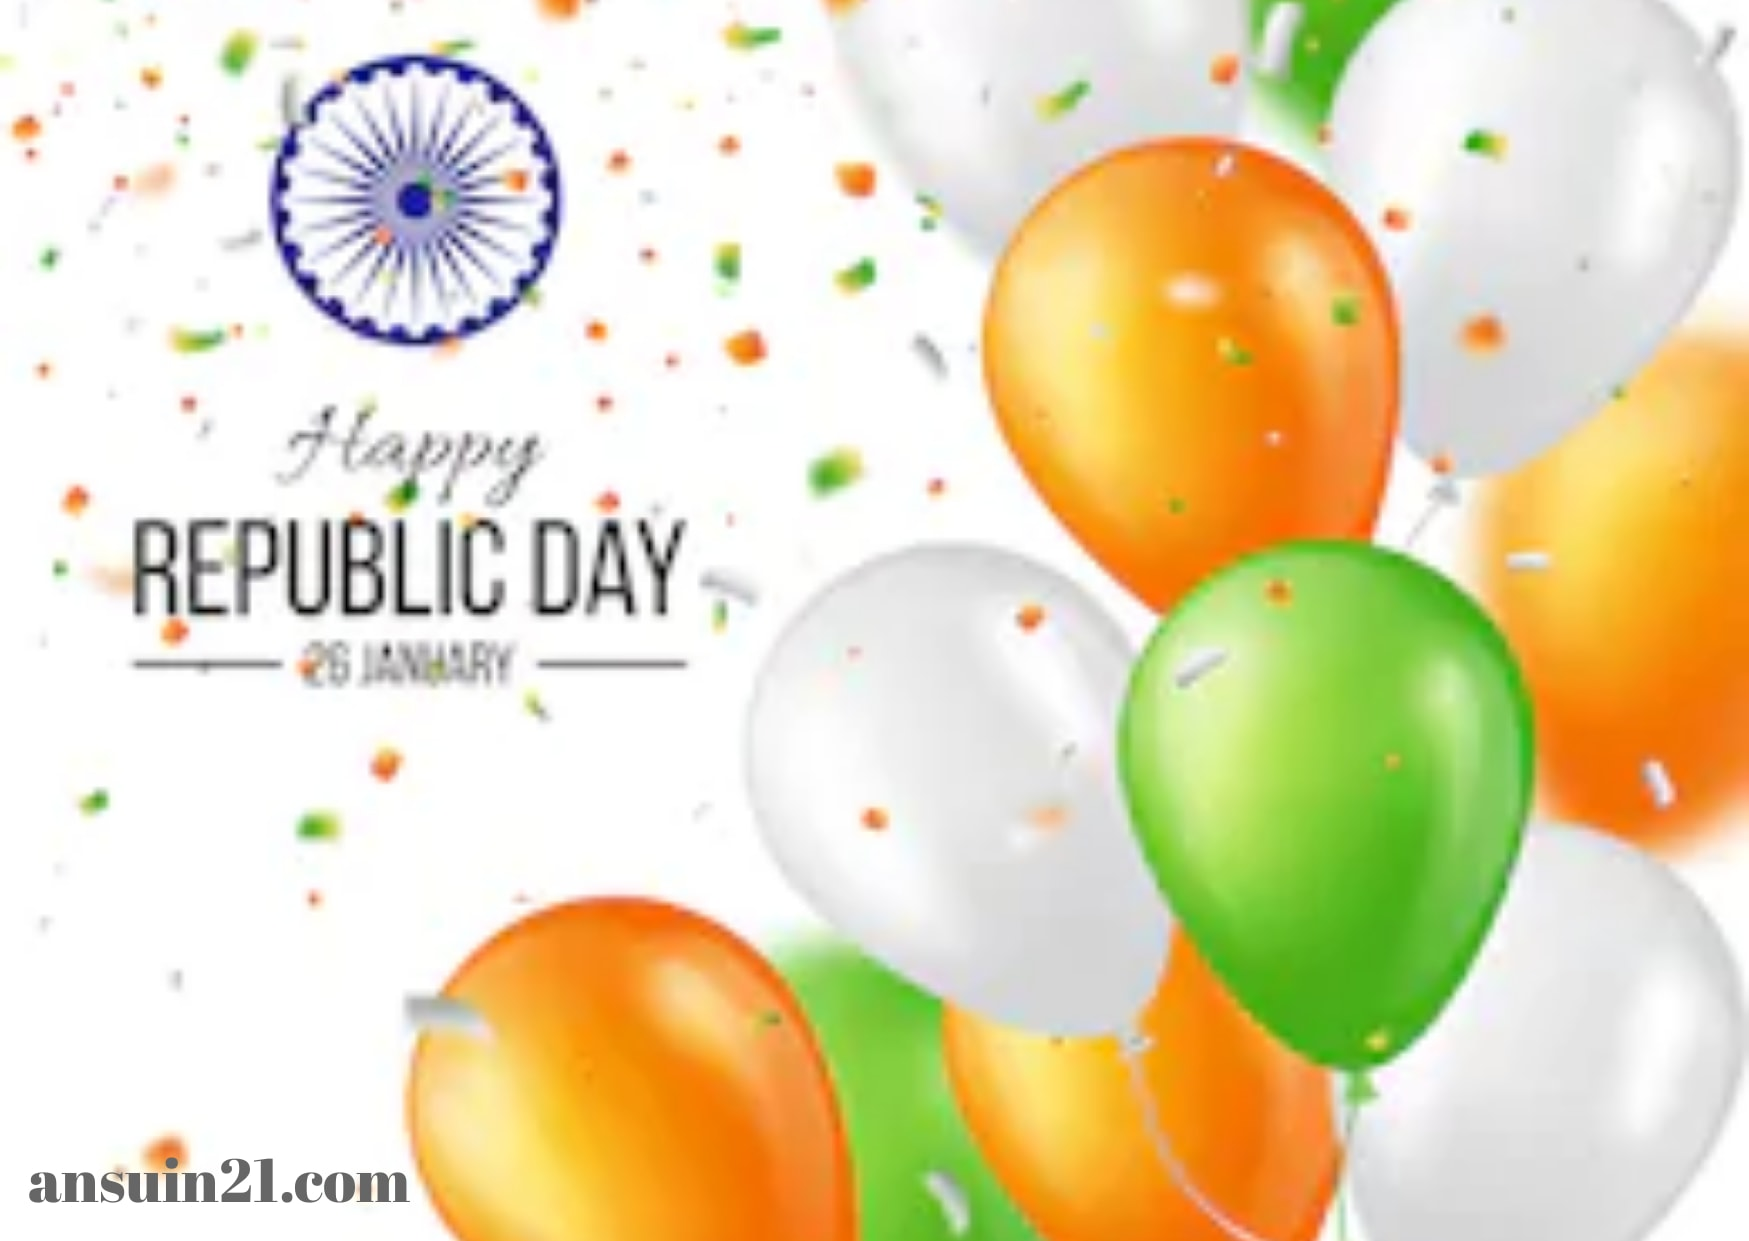 26 January Republic Day, Happy Republic Day Images Wishes,26 January Republic Day, Happy Republic Day Images Wishes,26 January Republic Day, Happy Republic Day Images Wishes,26 January Republic Day, Happy Republic Day Images Wishes,26 January Republic Day, Happy Republic Day Images Wishes,26 January Republic Day, Happy Republic Day Images Wishes,26 January Republic Day, Happy Republic Day Images Wishes,26 January Republic Day, Happy Republic Day Images Wishes,